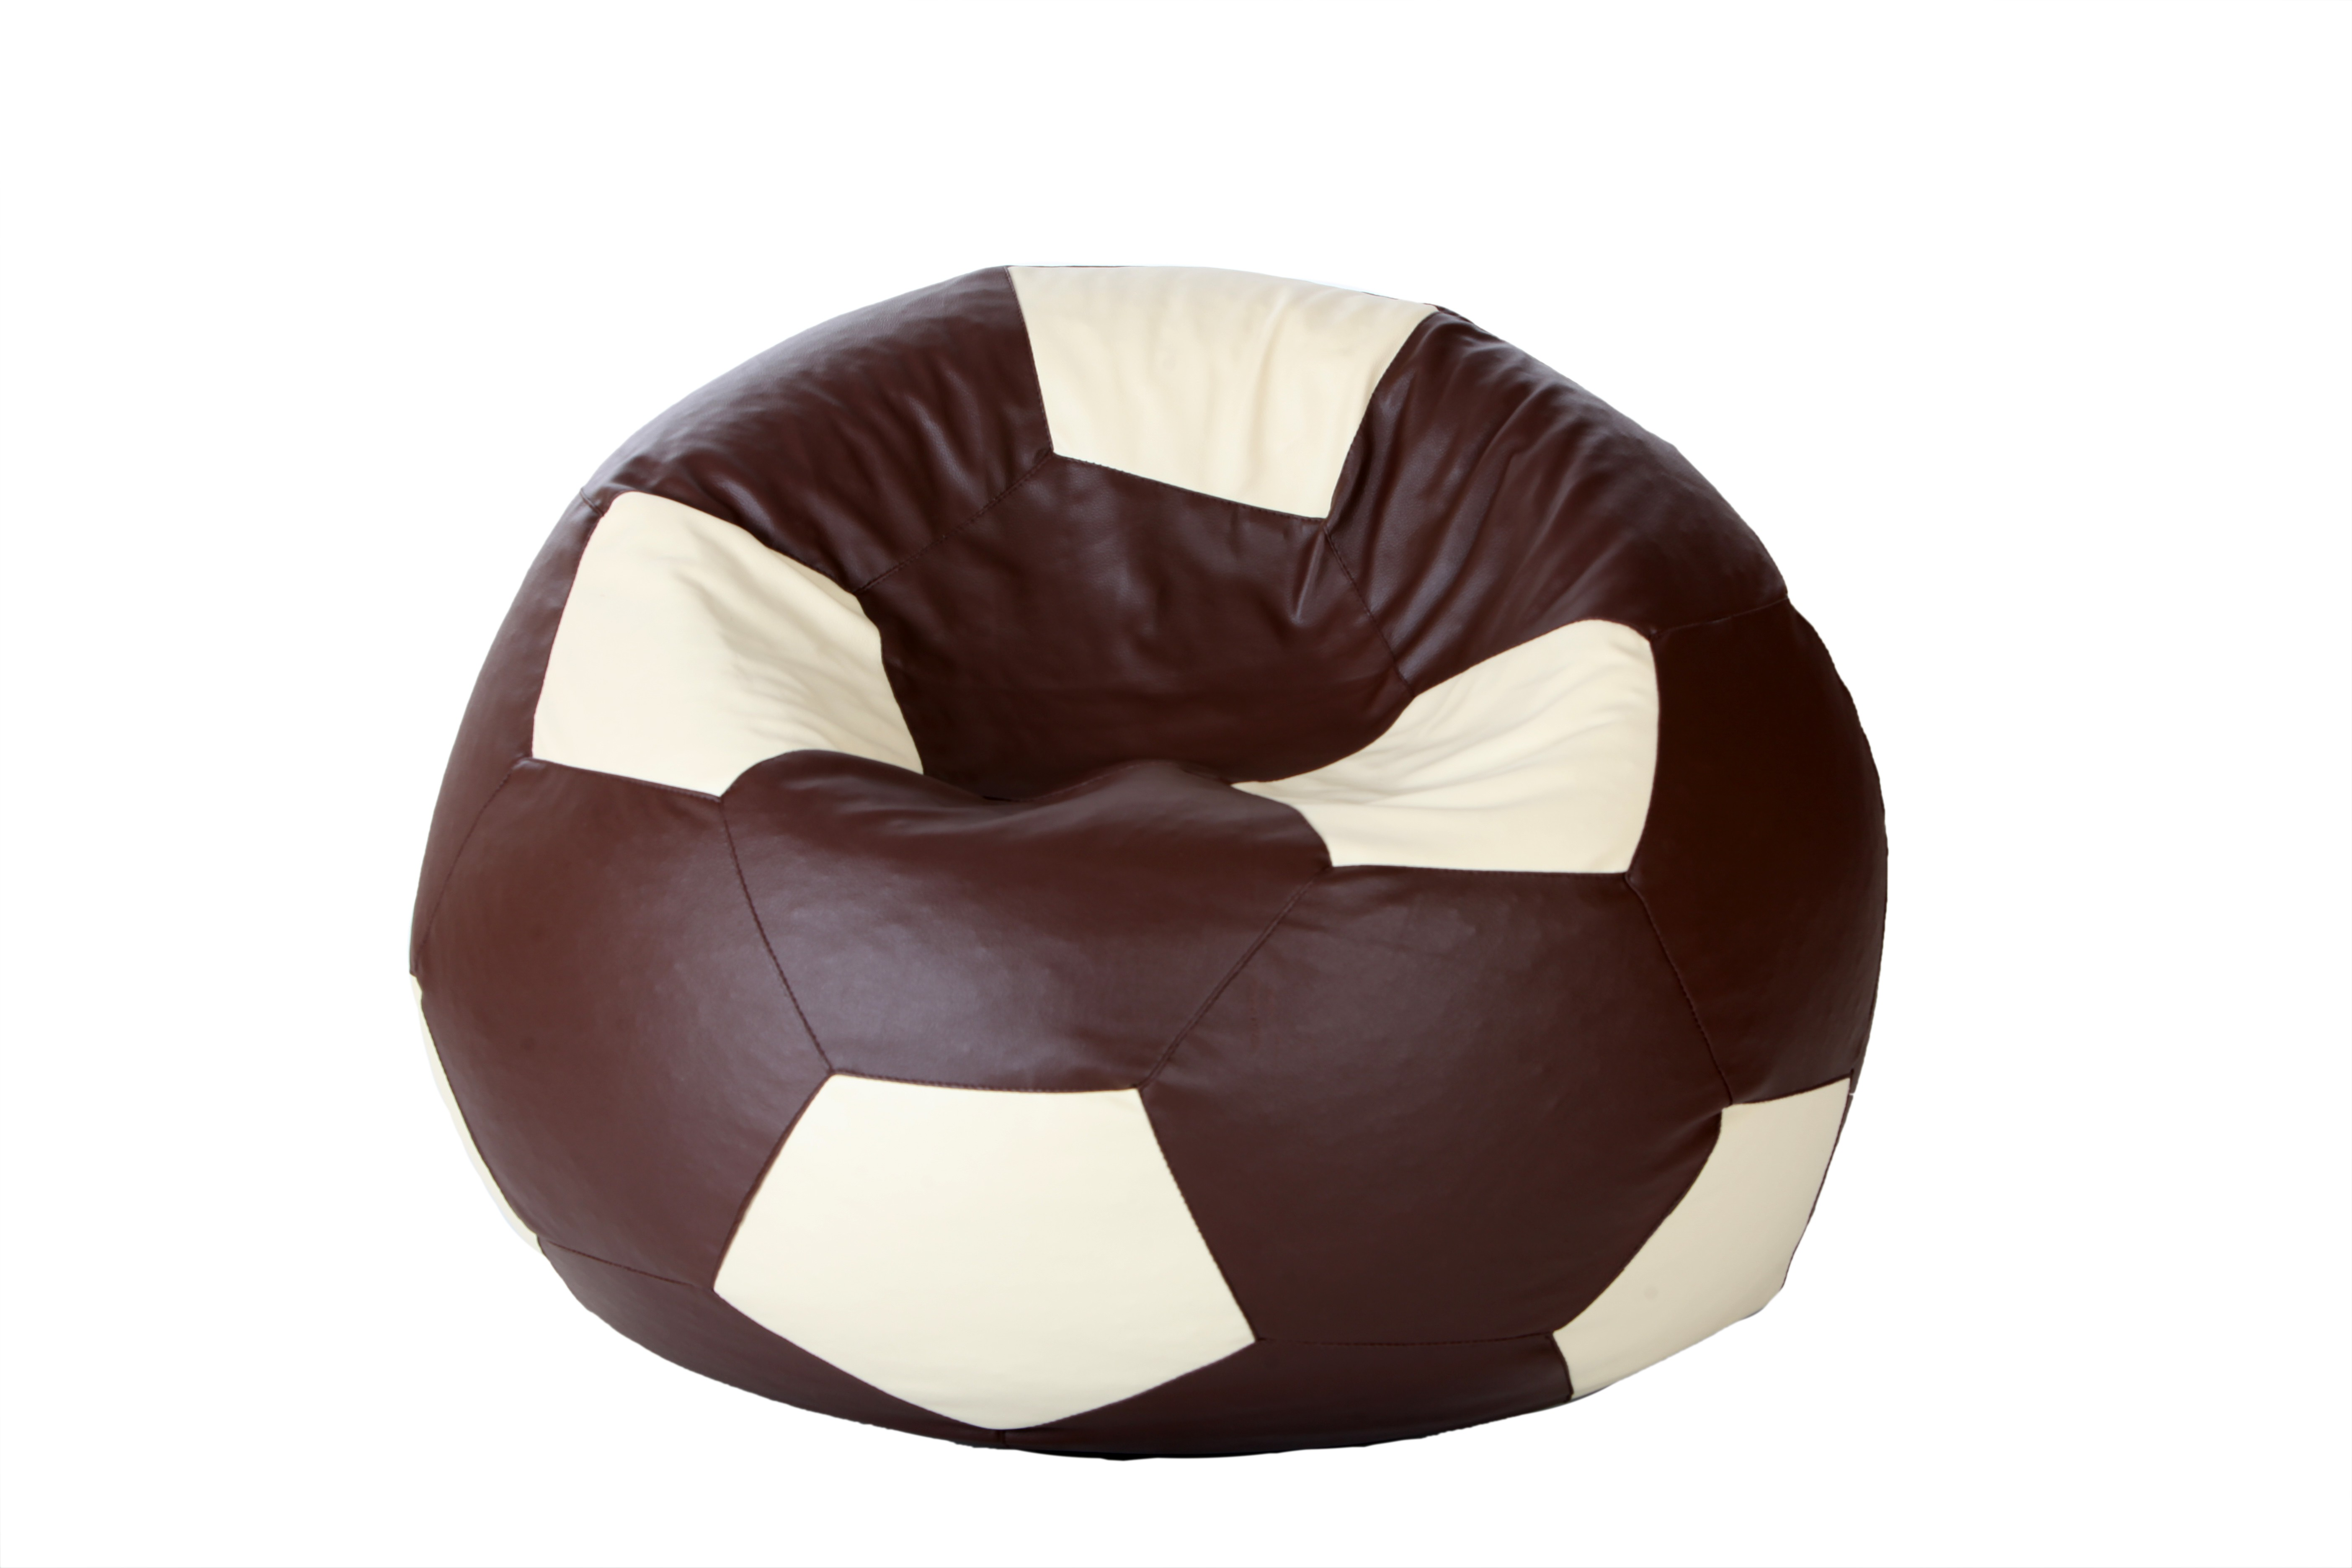 View Comfy Bean Bags XL Bean Bag Cover(Brown, White) Furniture (Comfy Bean Bags)